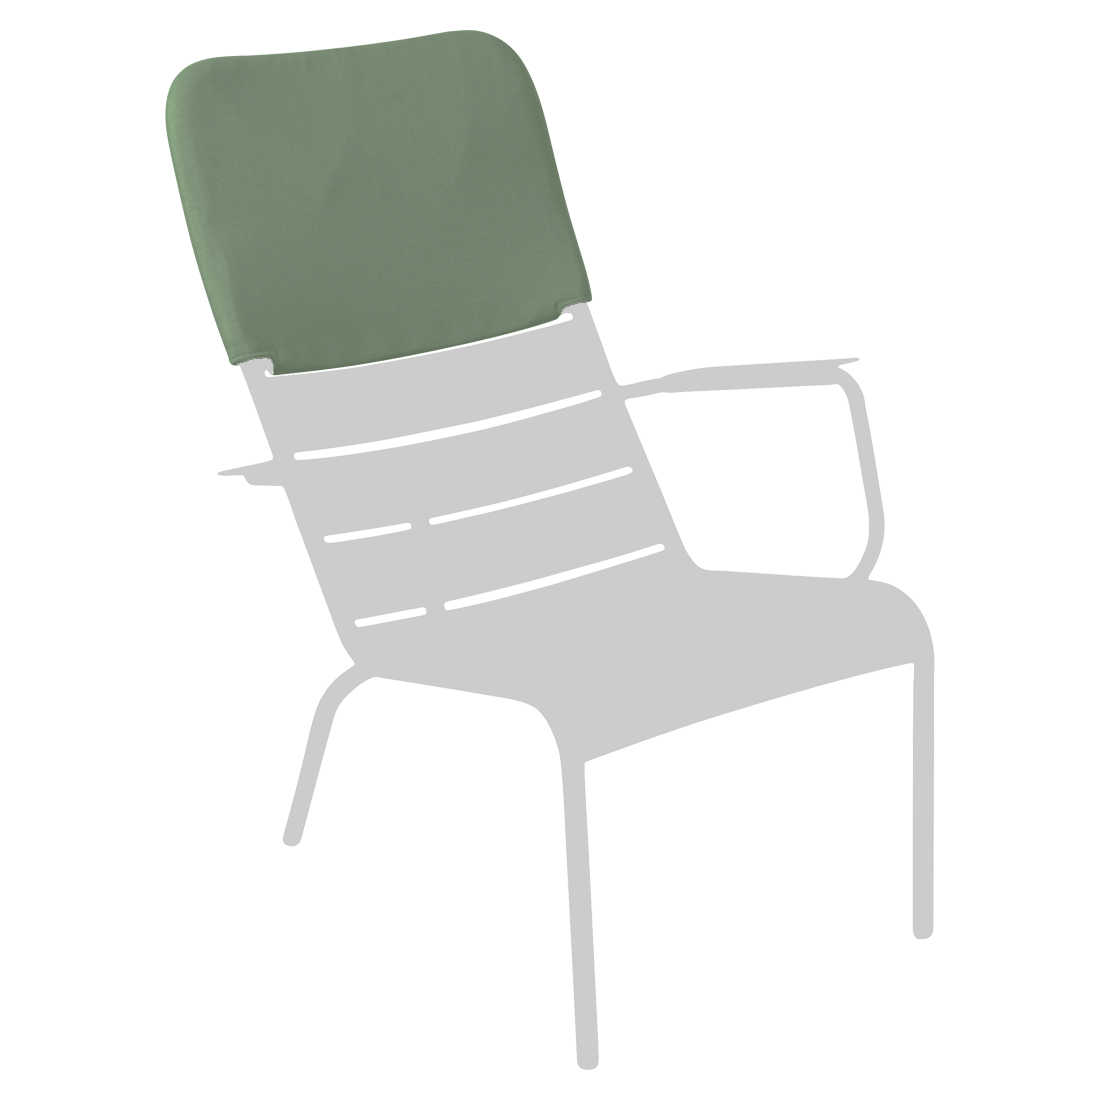 appui-tête fauteuil bas Luxembourg vert